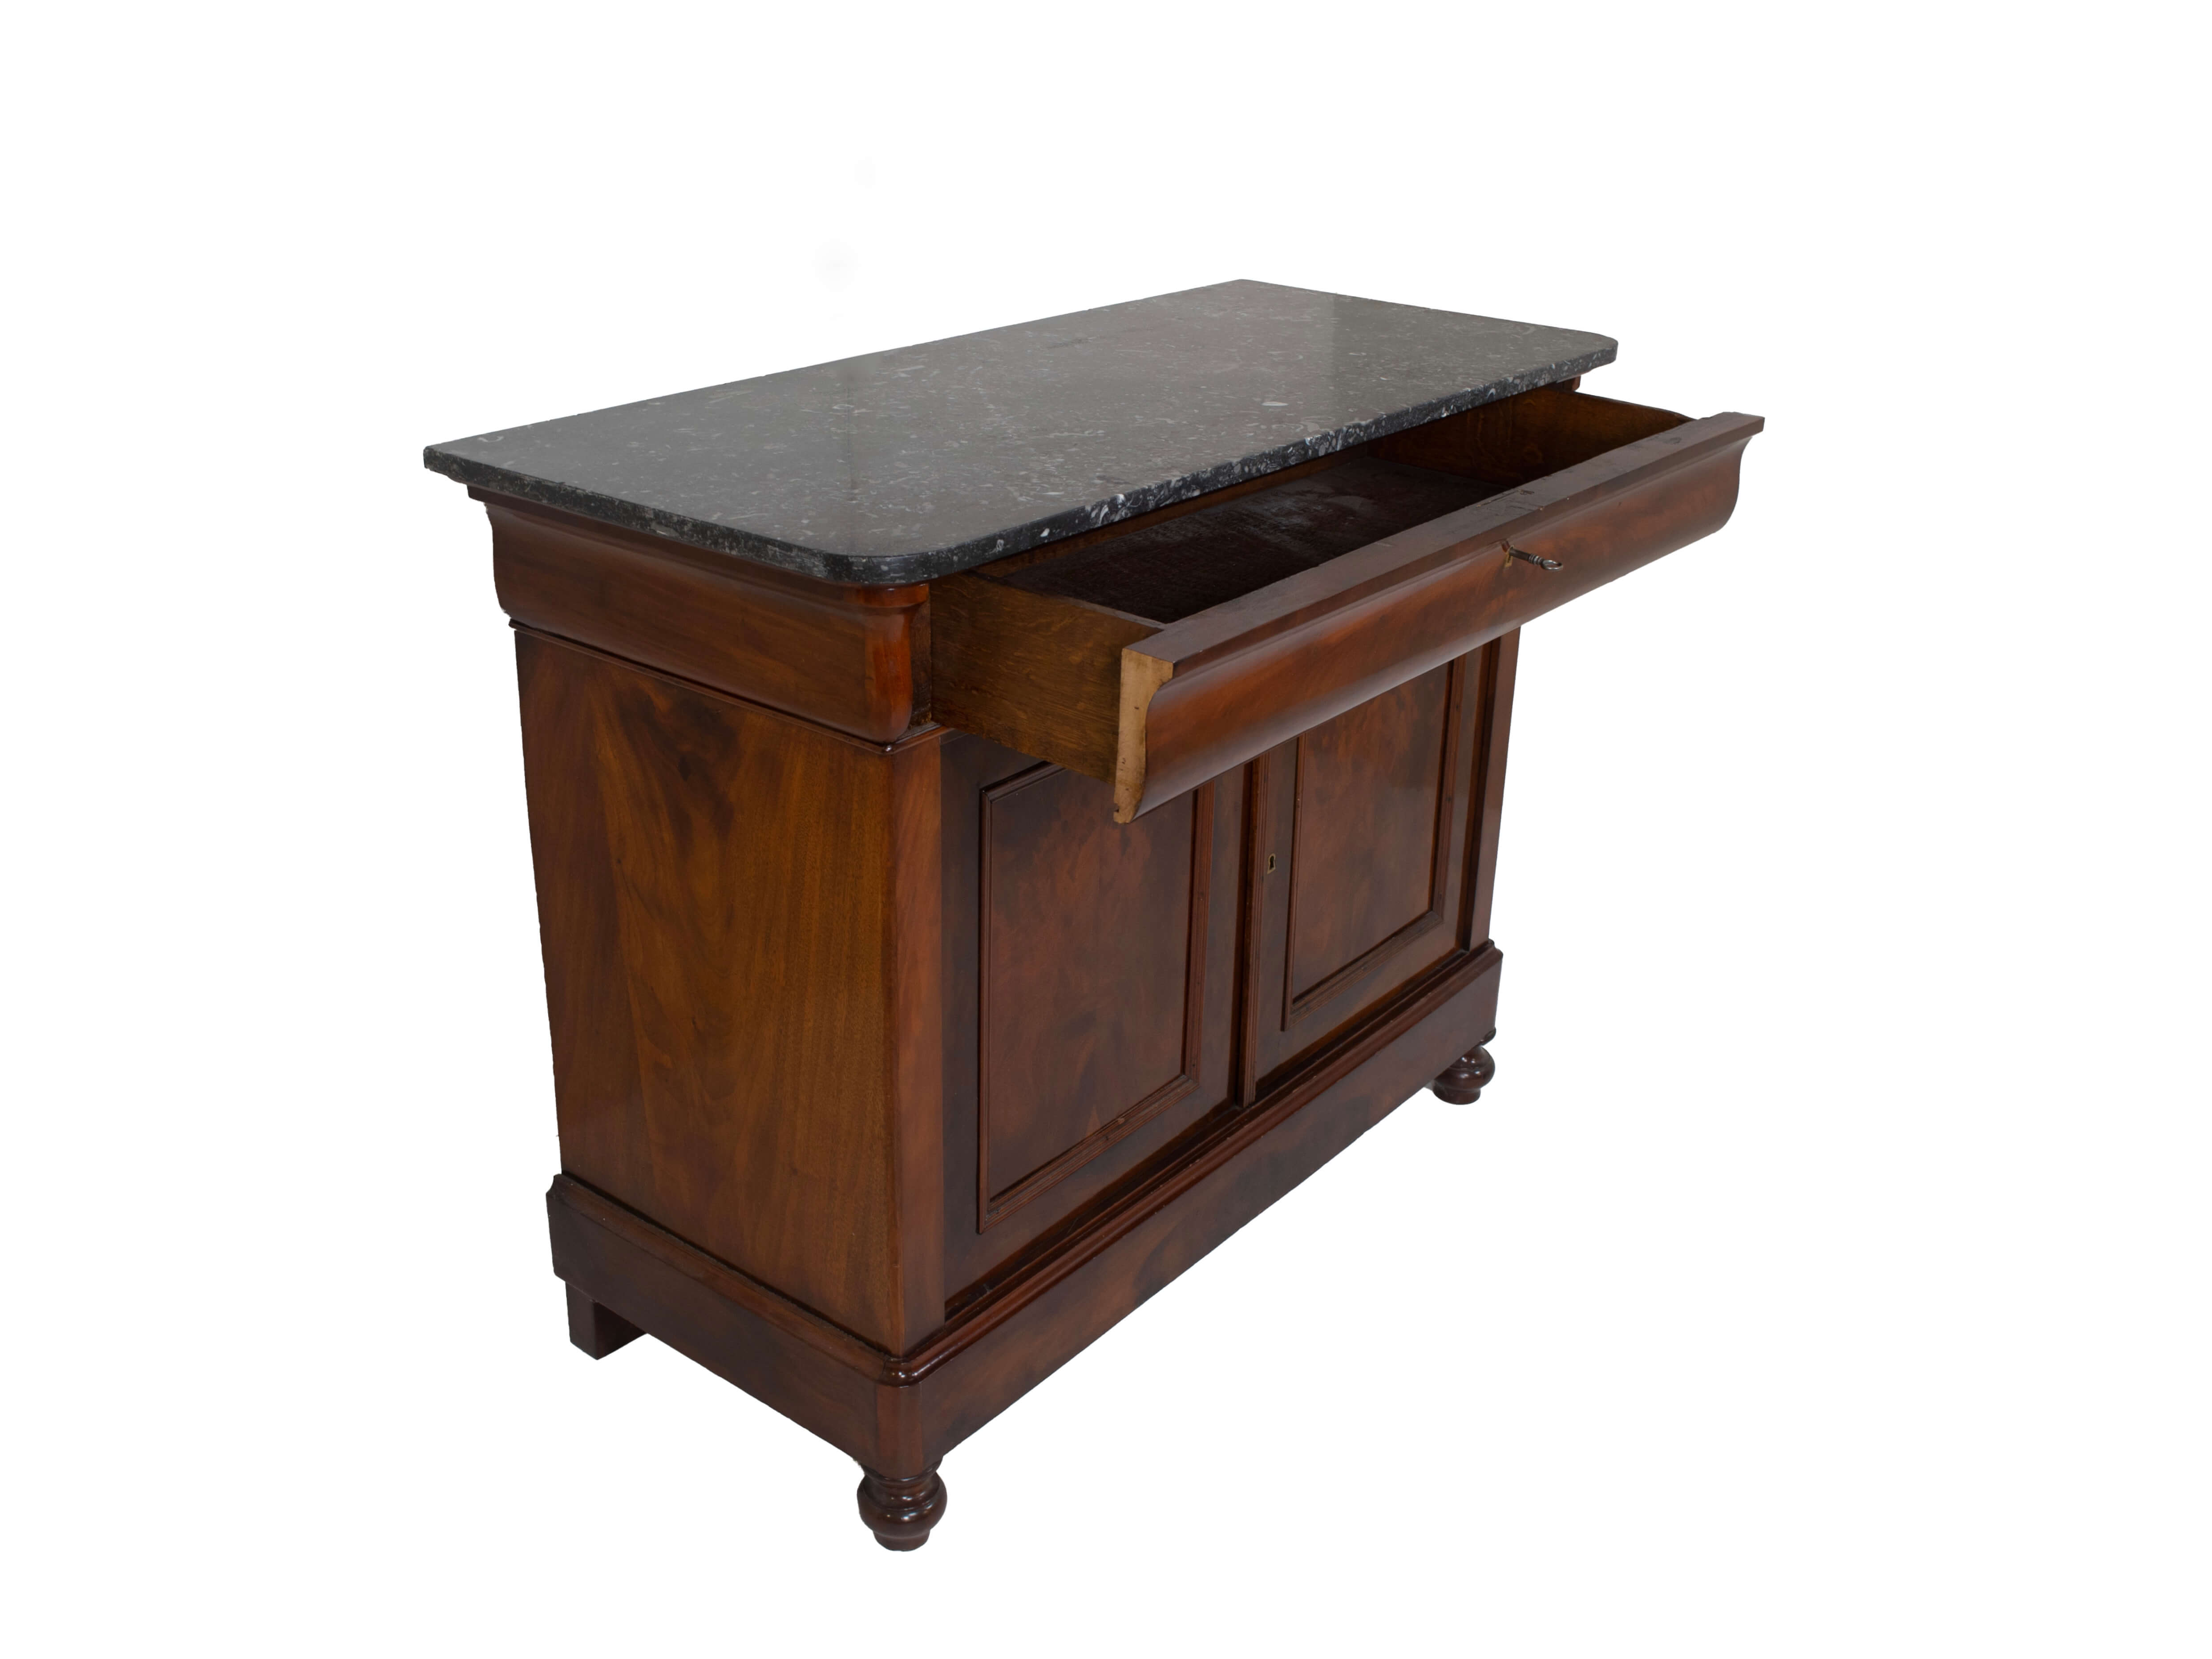 Side view Dutch Early Biedermeier Chest of Drawers in Mahogany with Marble Top